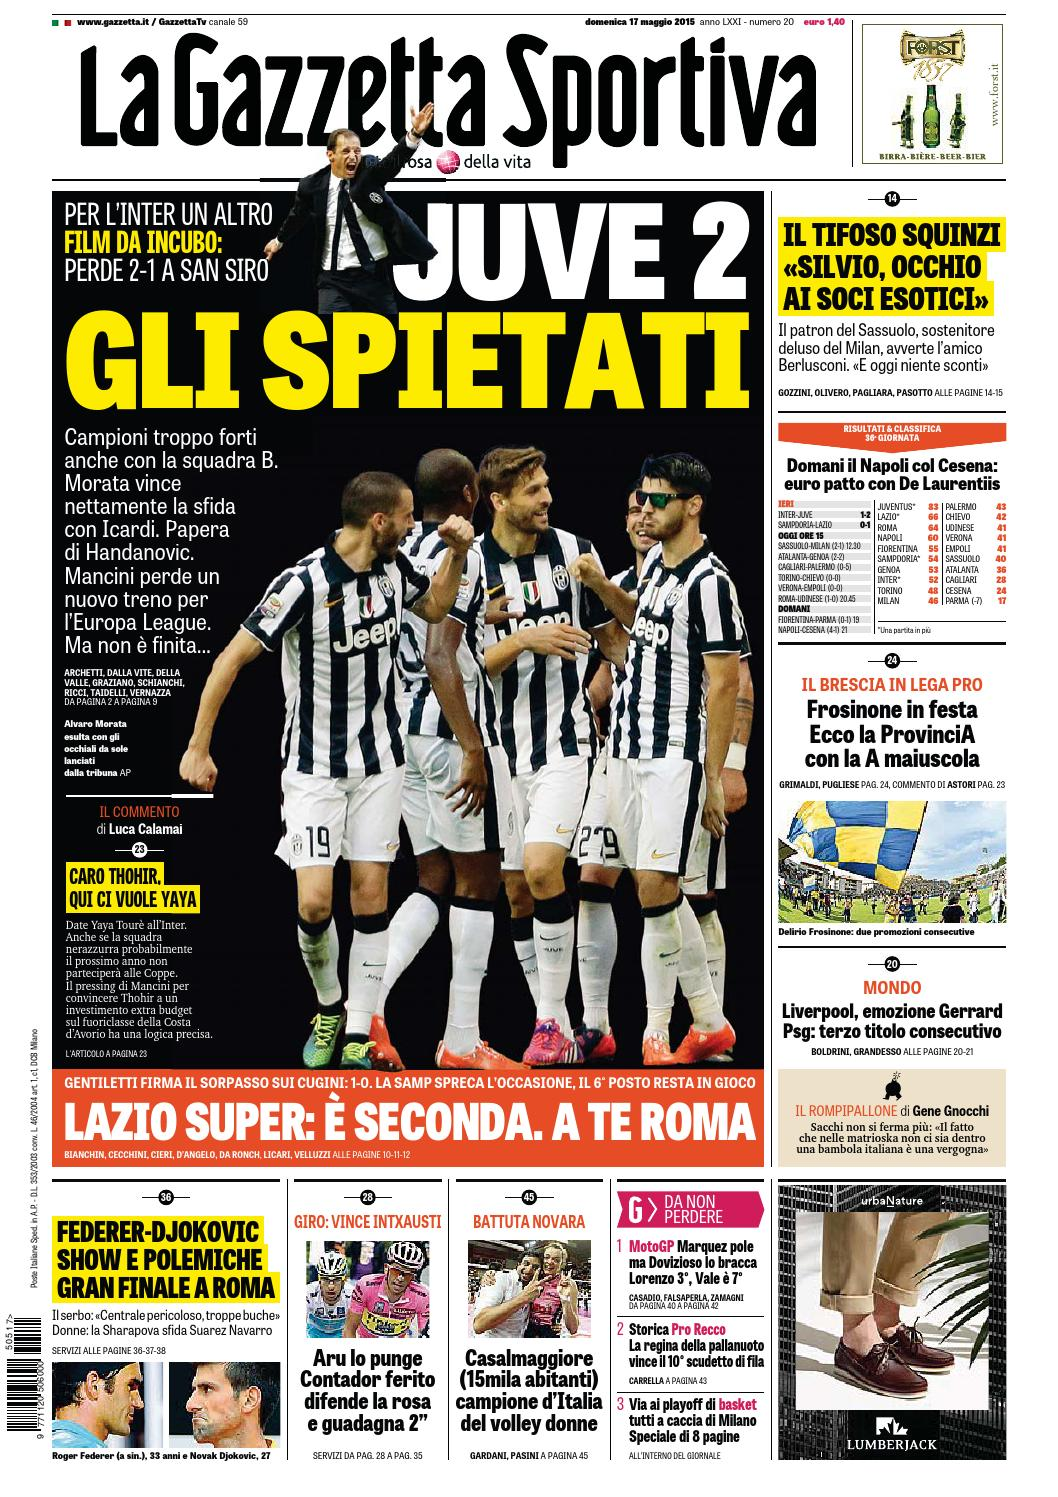 La Gazzetta dello Sport (05-17-2015) by Nguyen Duc Thinh - issuu 6b6ee2da529e